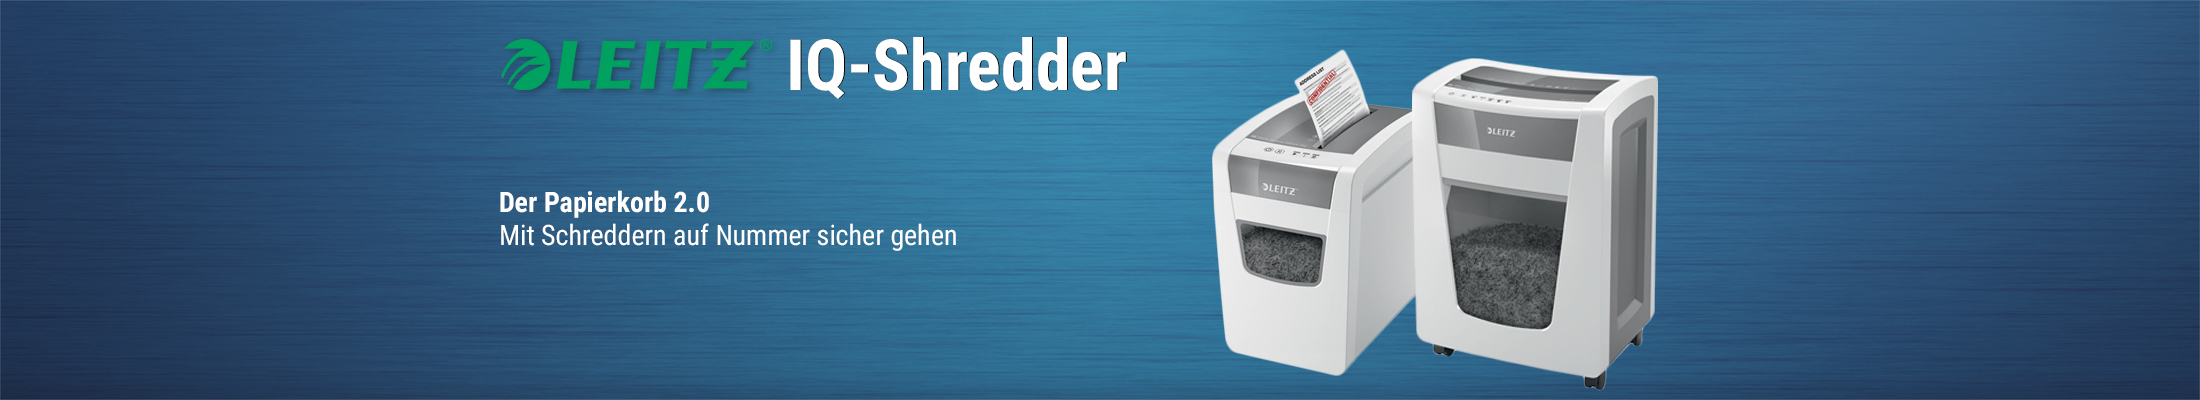 Leitz IQ-Shredder Papierkorb 2.0